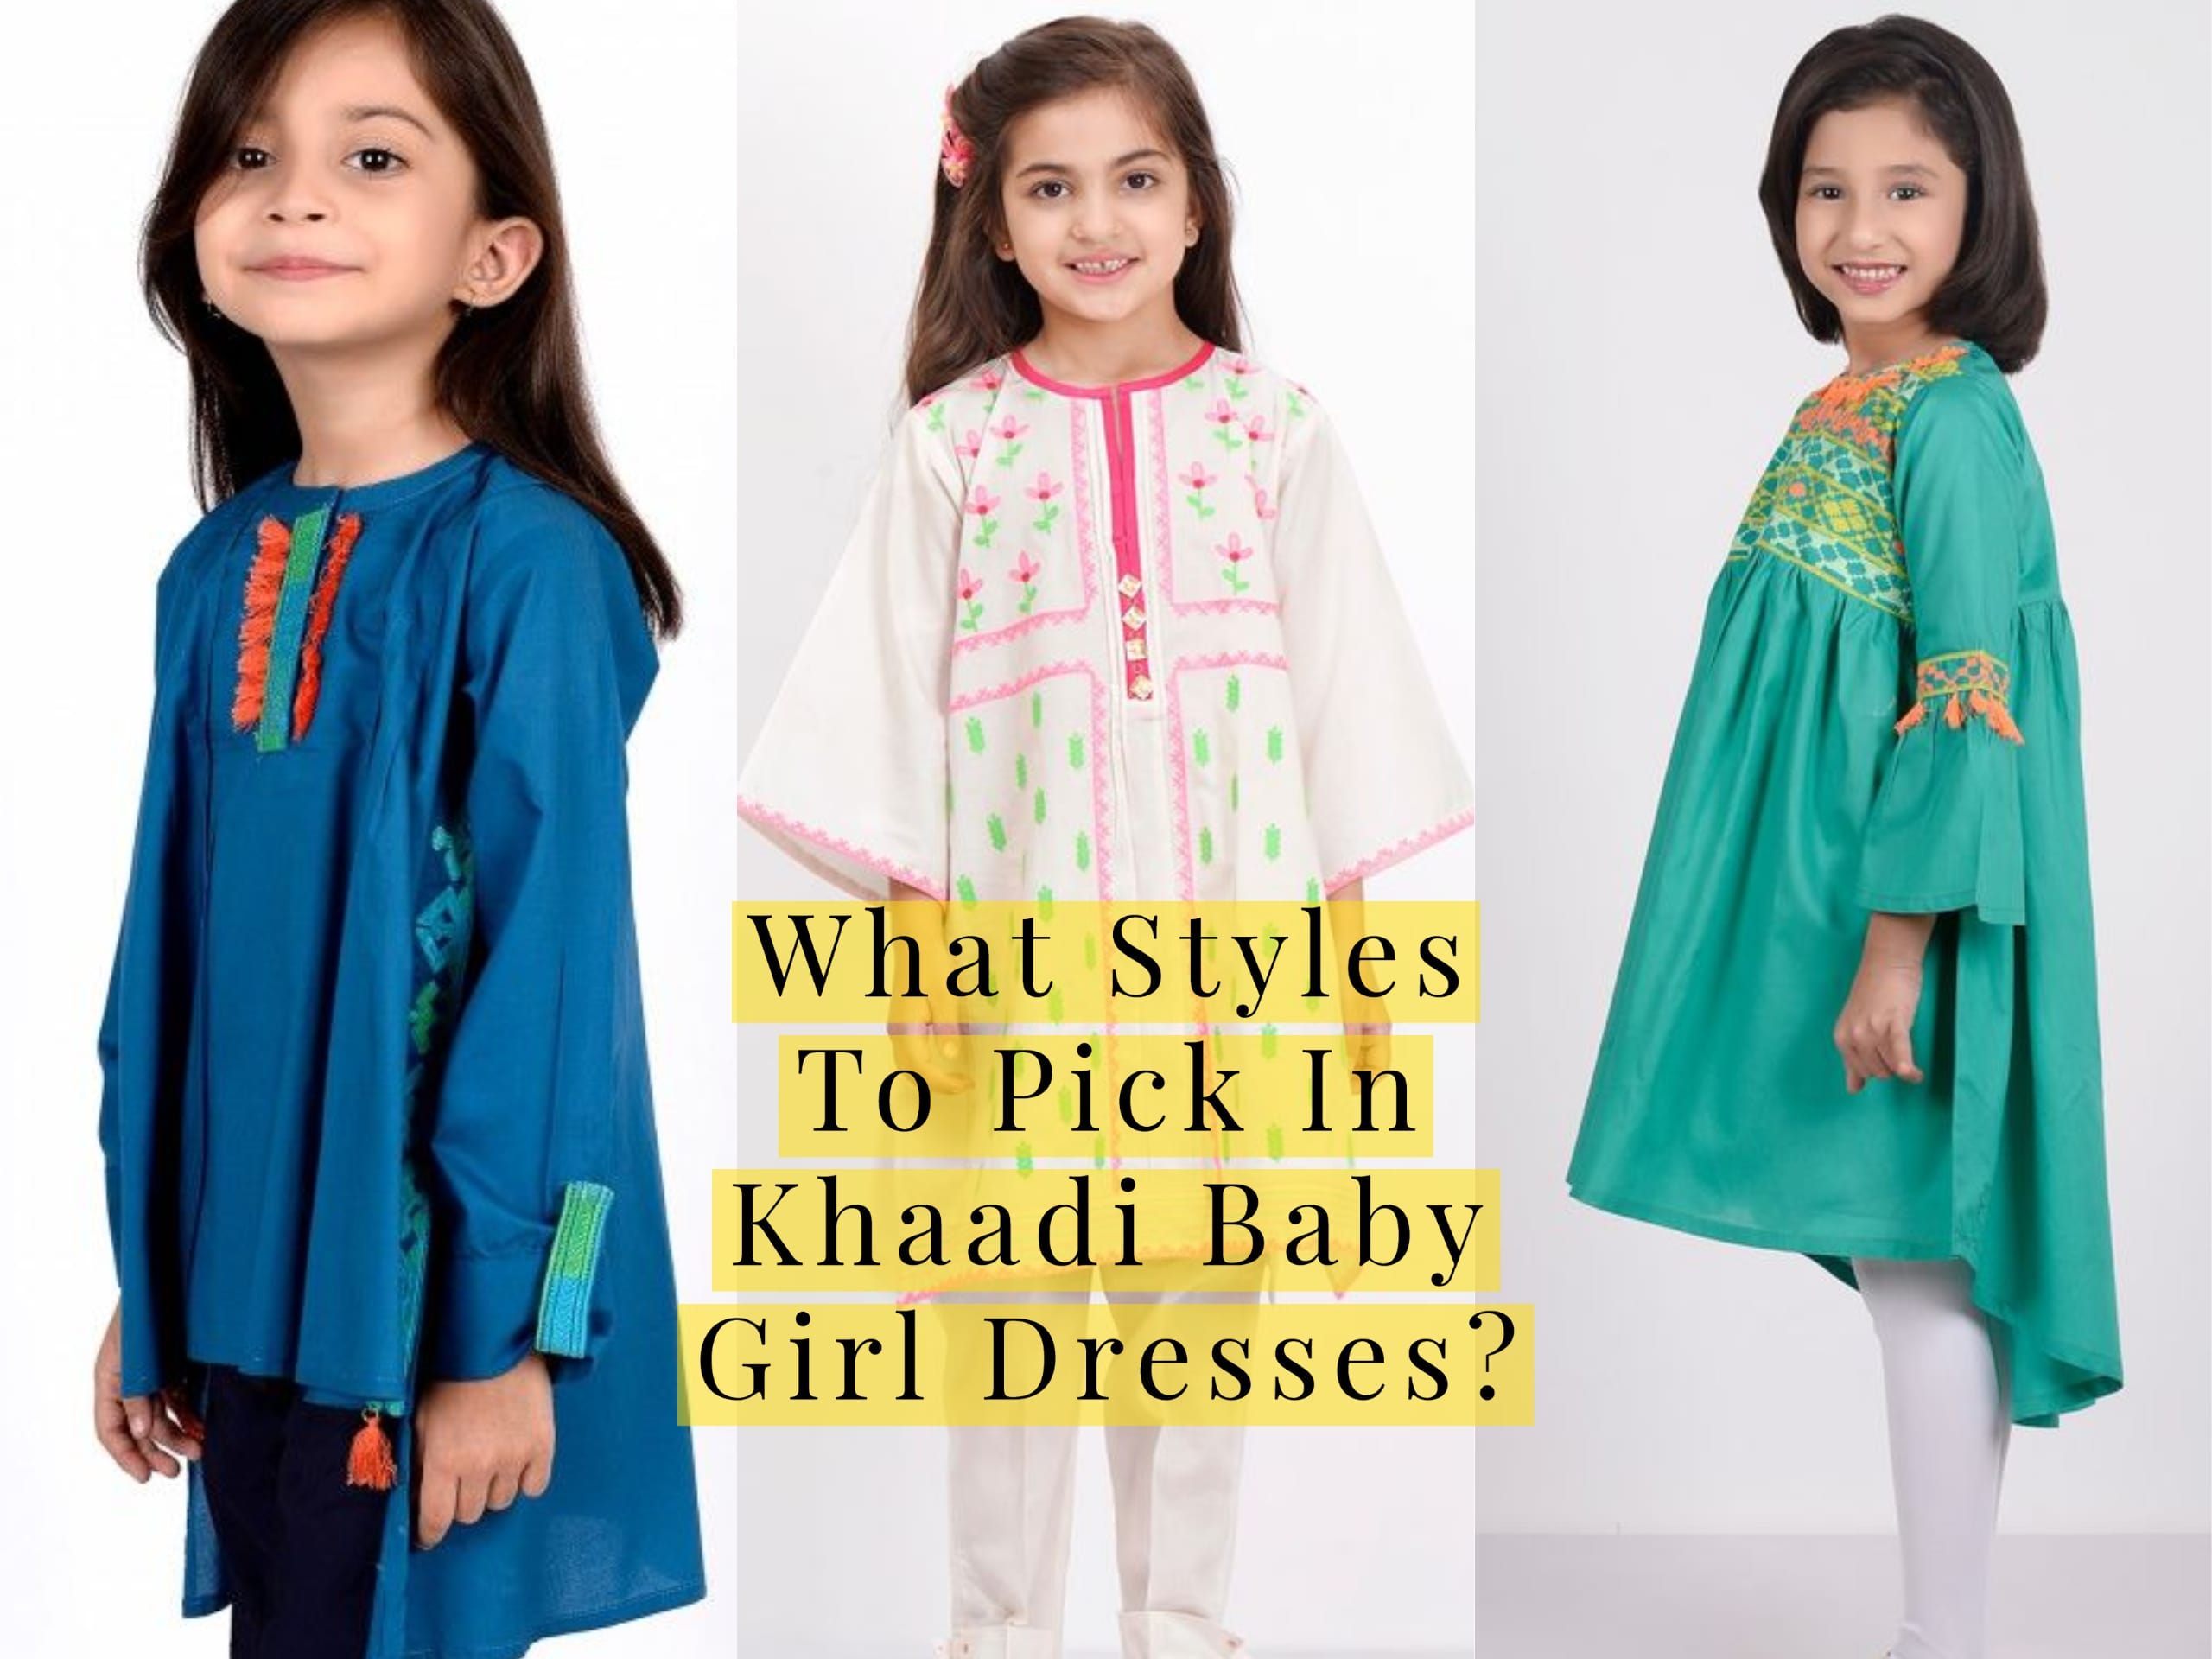 What Styles To Pick In Khaadi Baby Girl Dresses